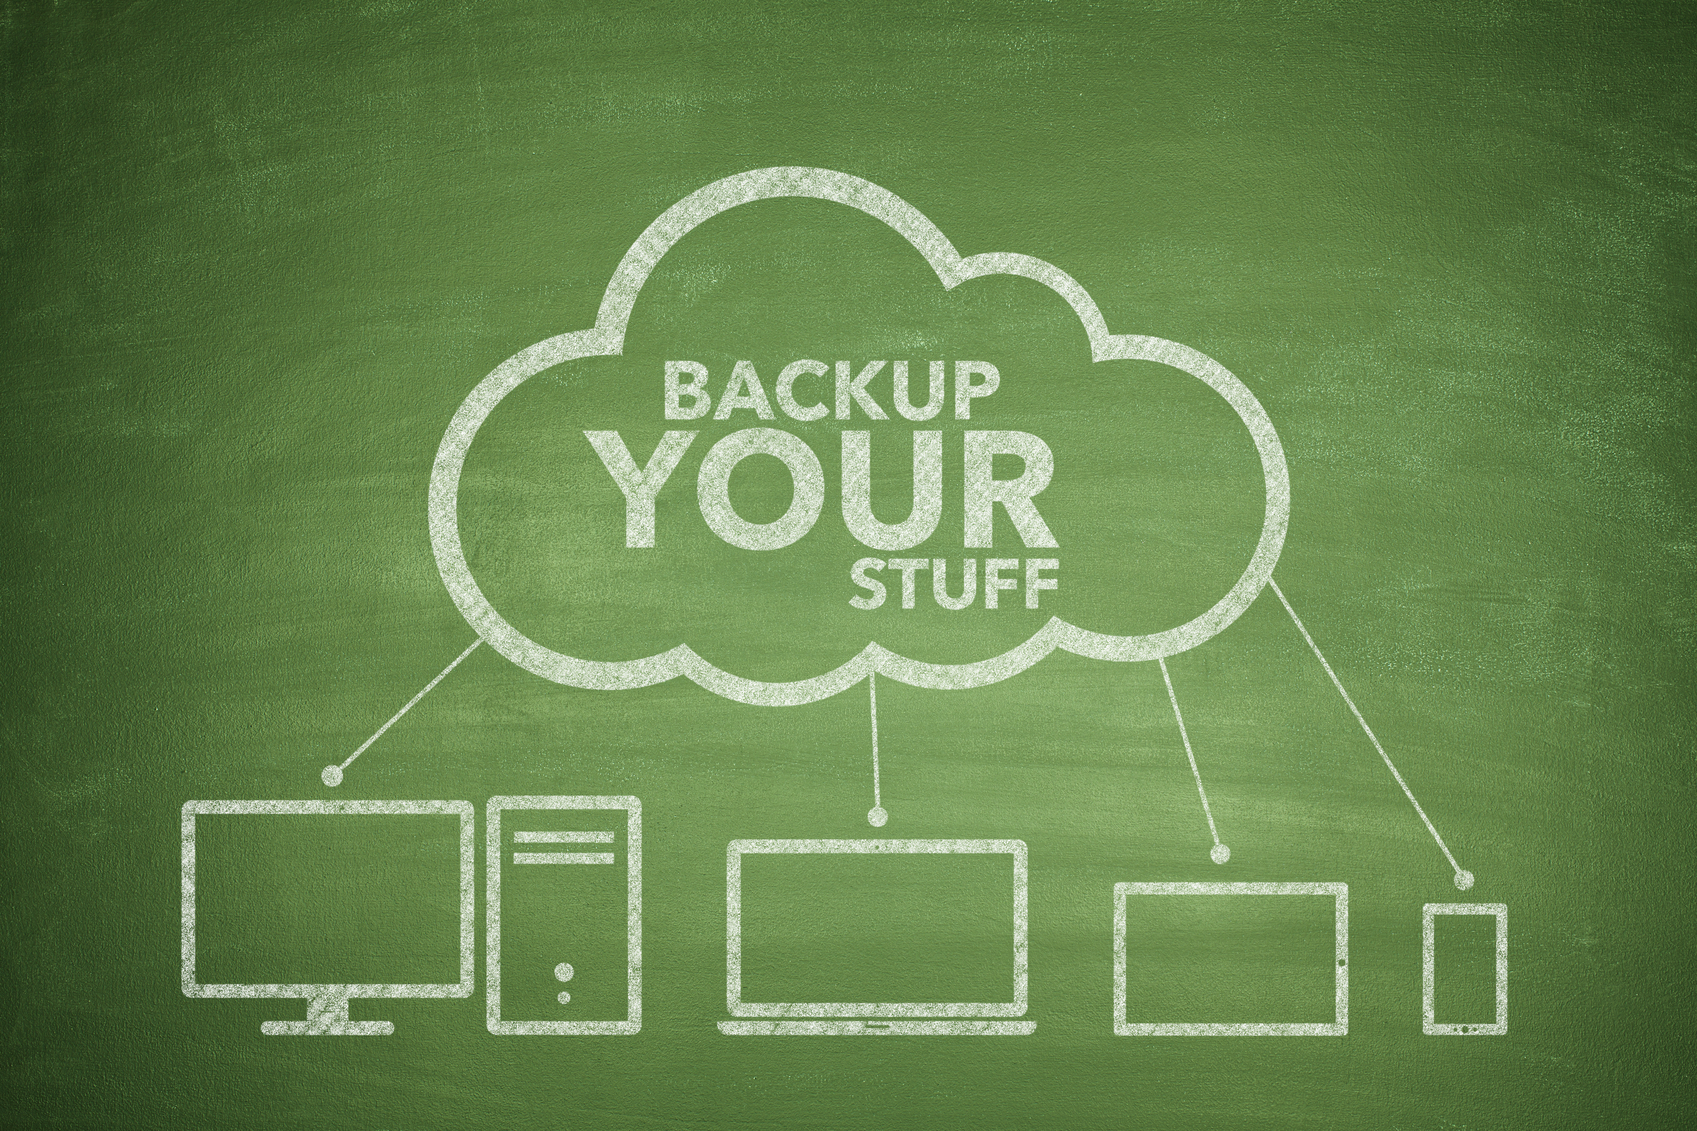 Backup your stuff concept on green background